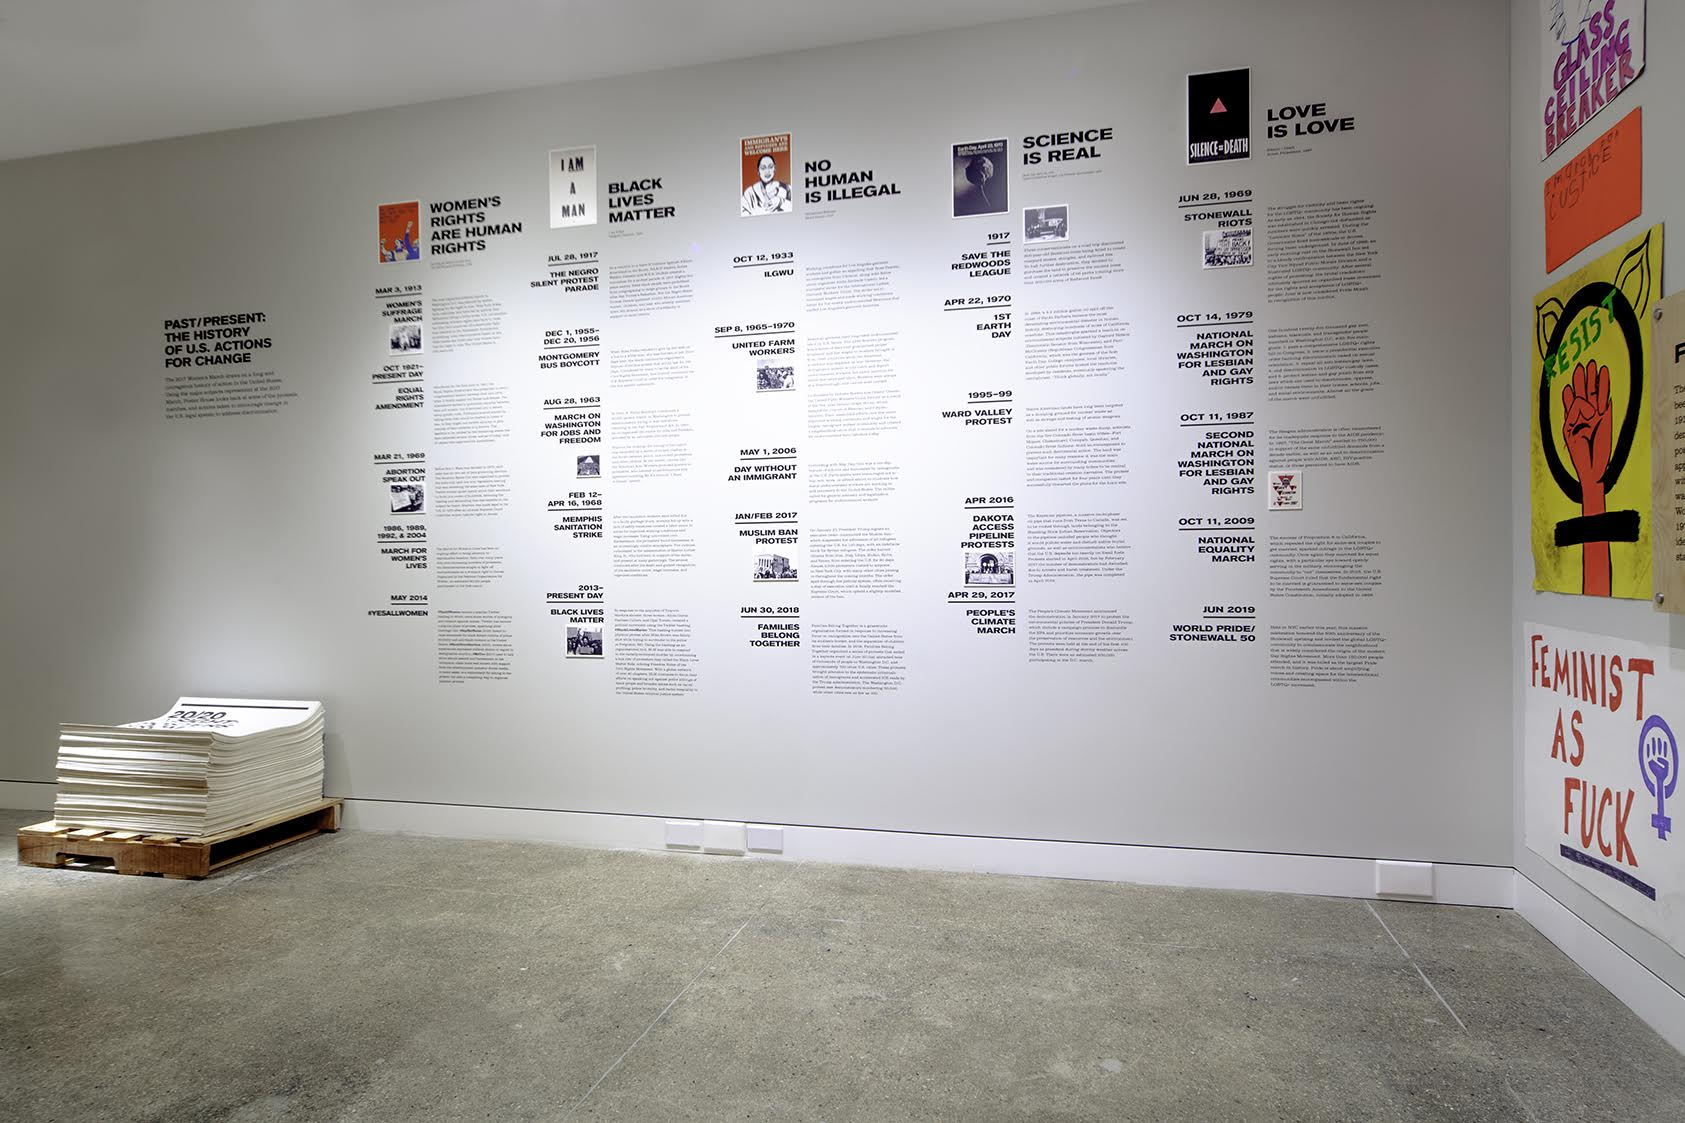 photograph of a wall timeline from the Women's March exhibition